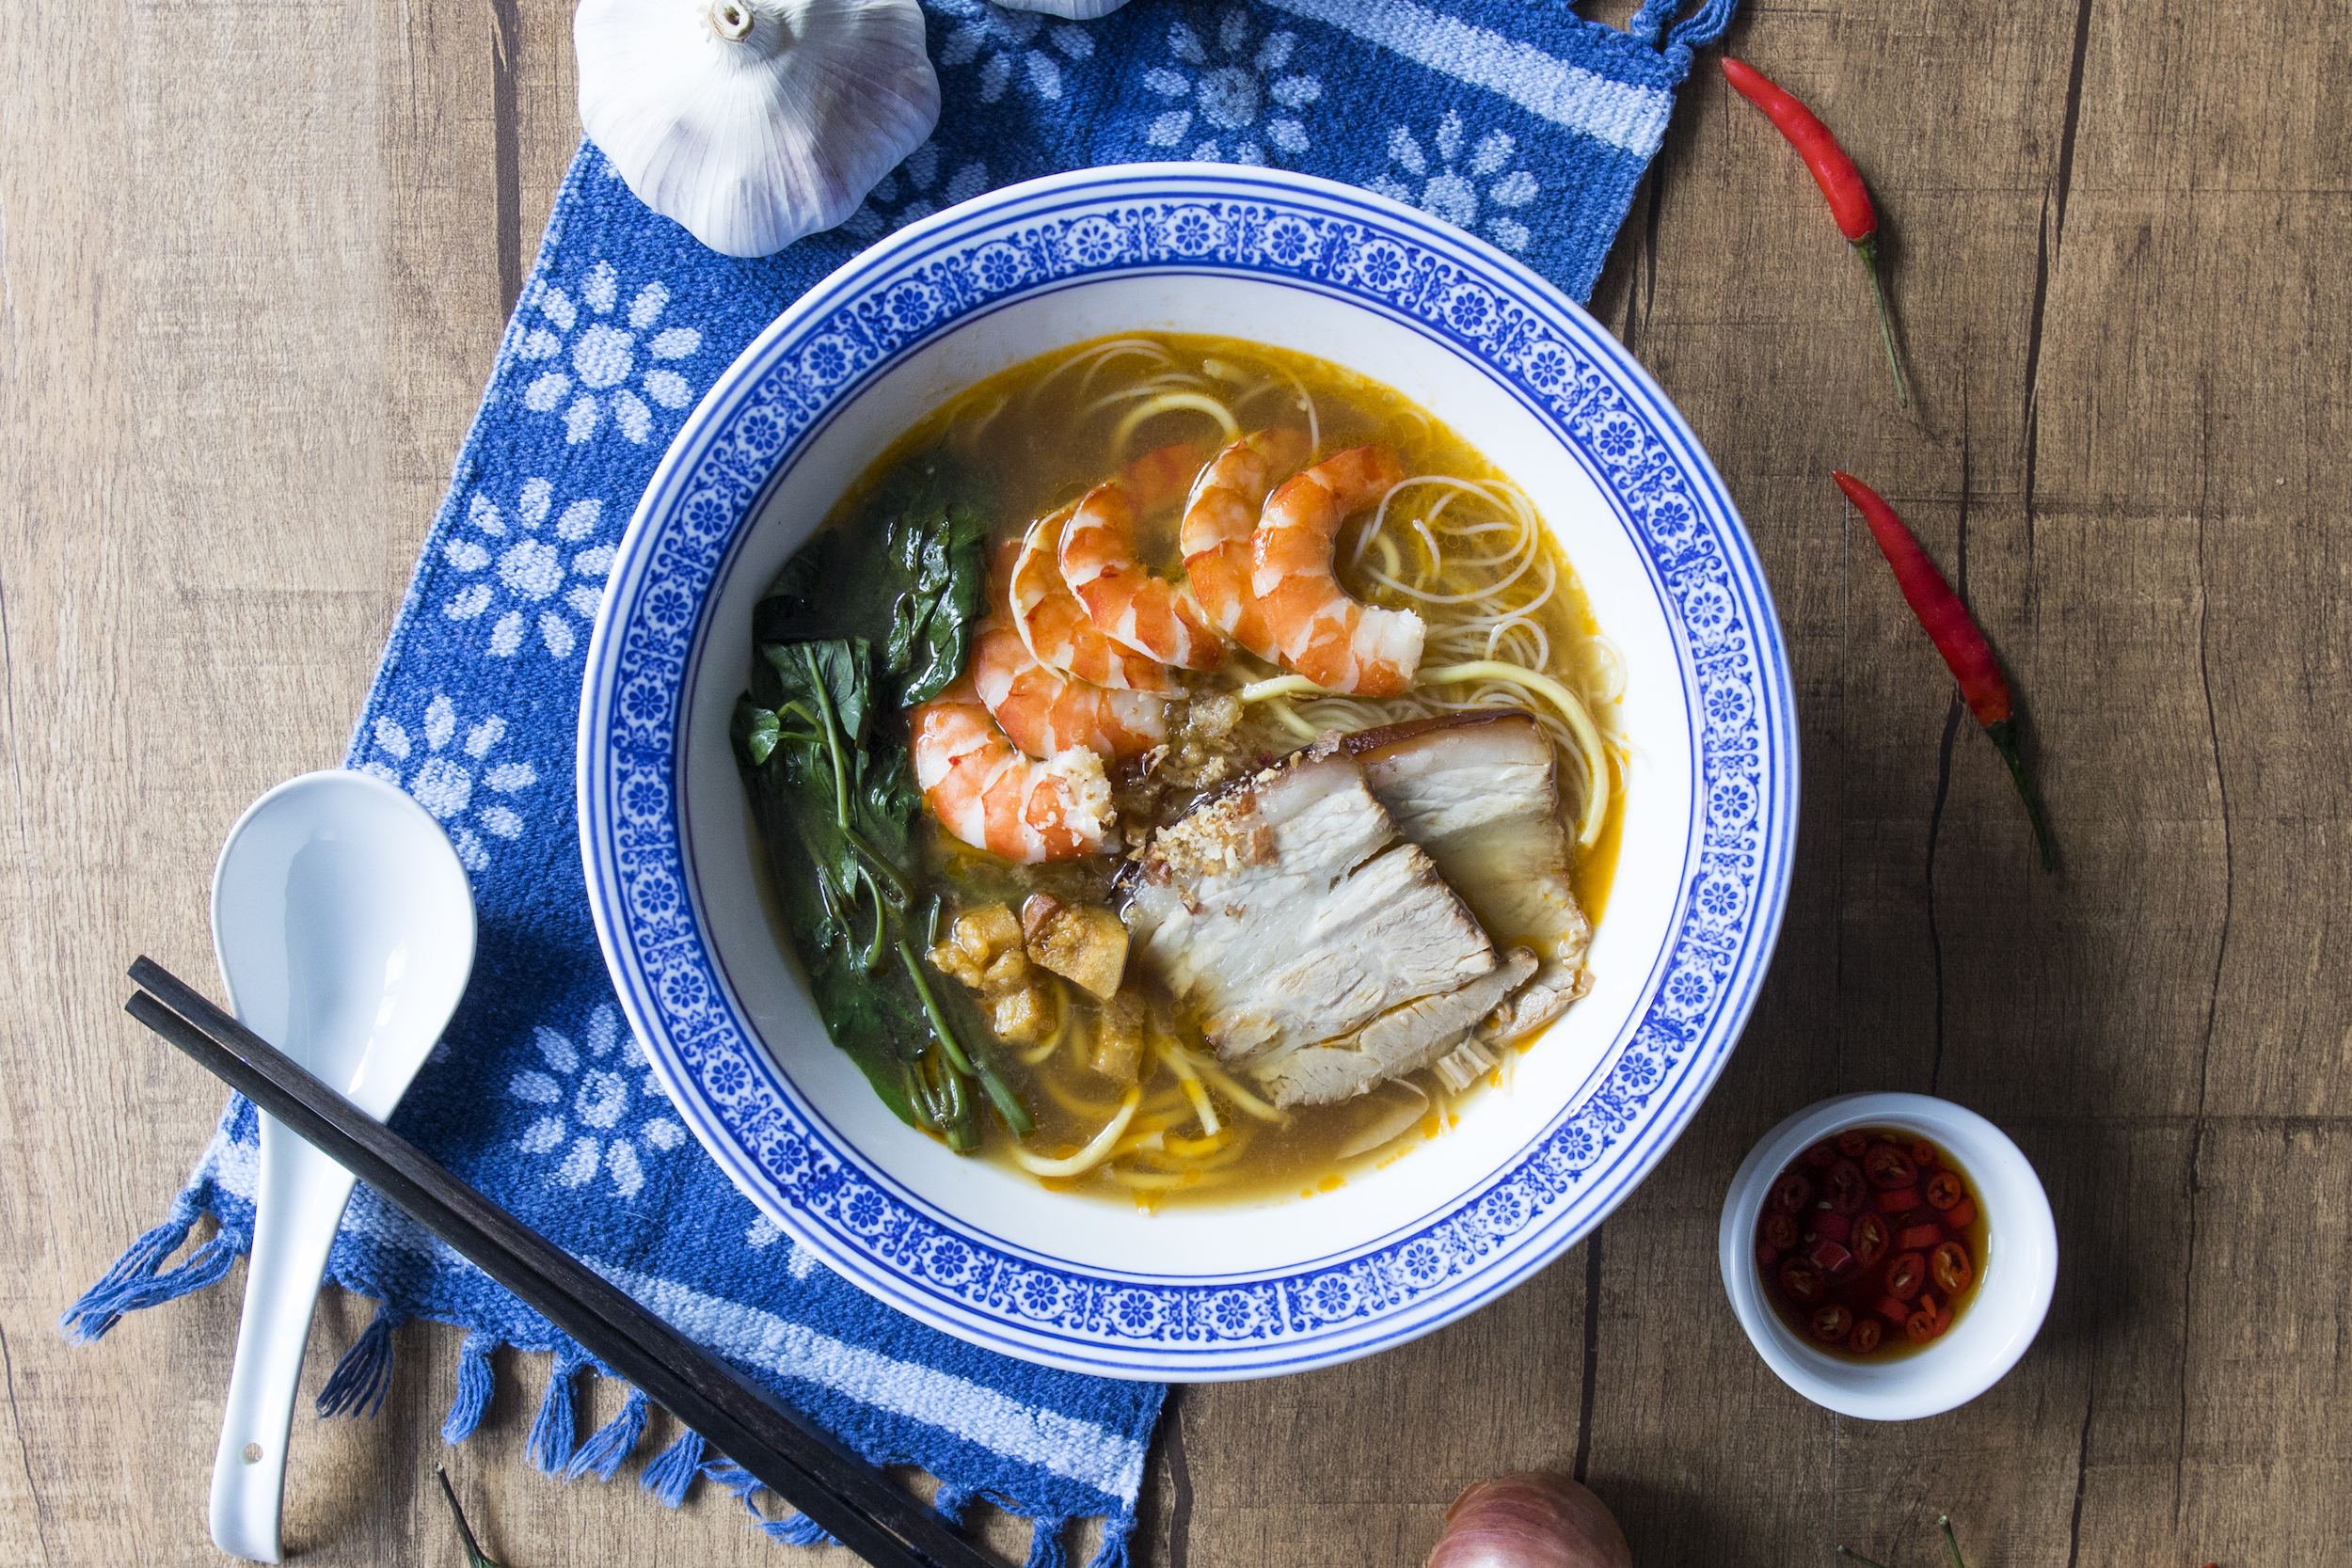 10 new Hong Kong restaurants to try in April